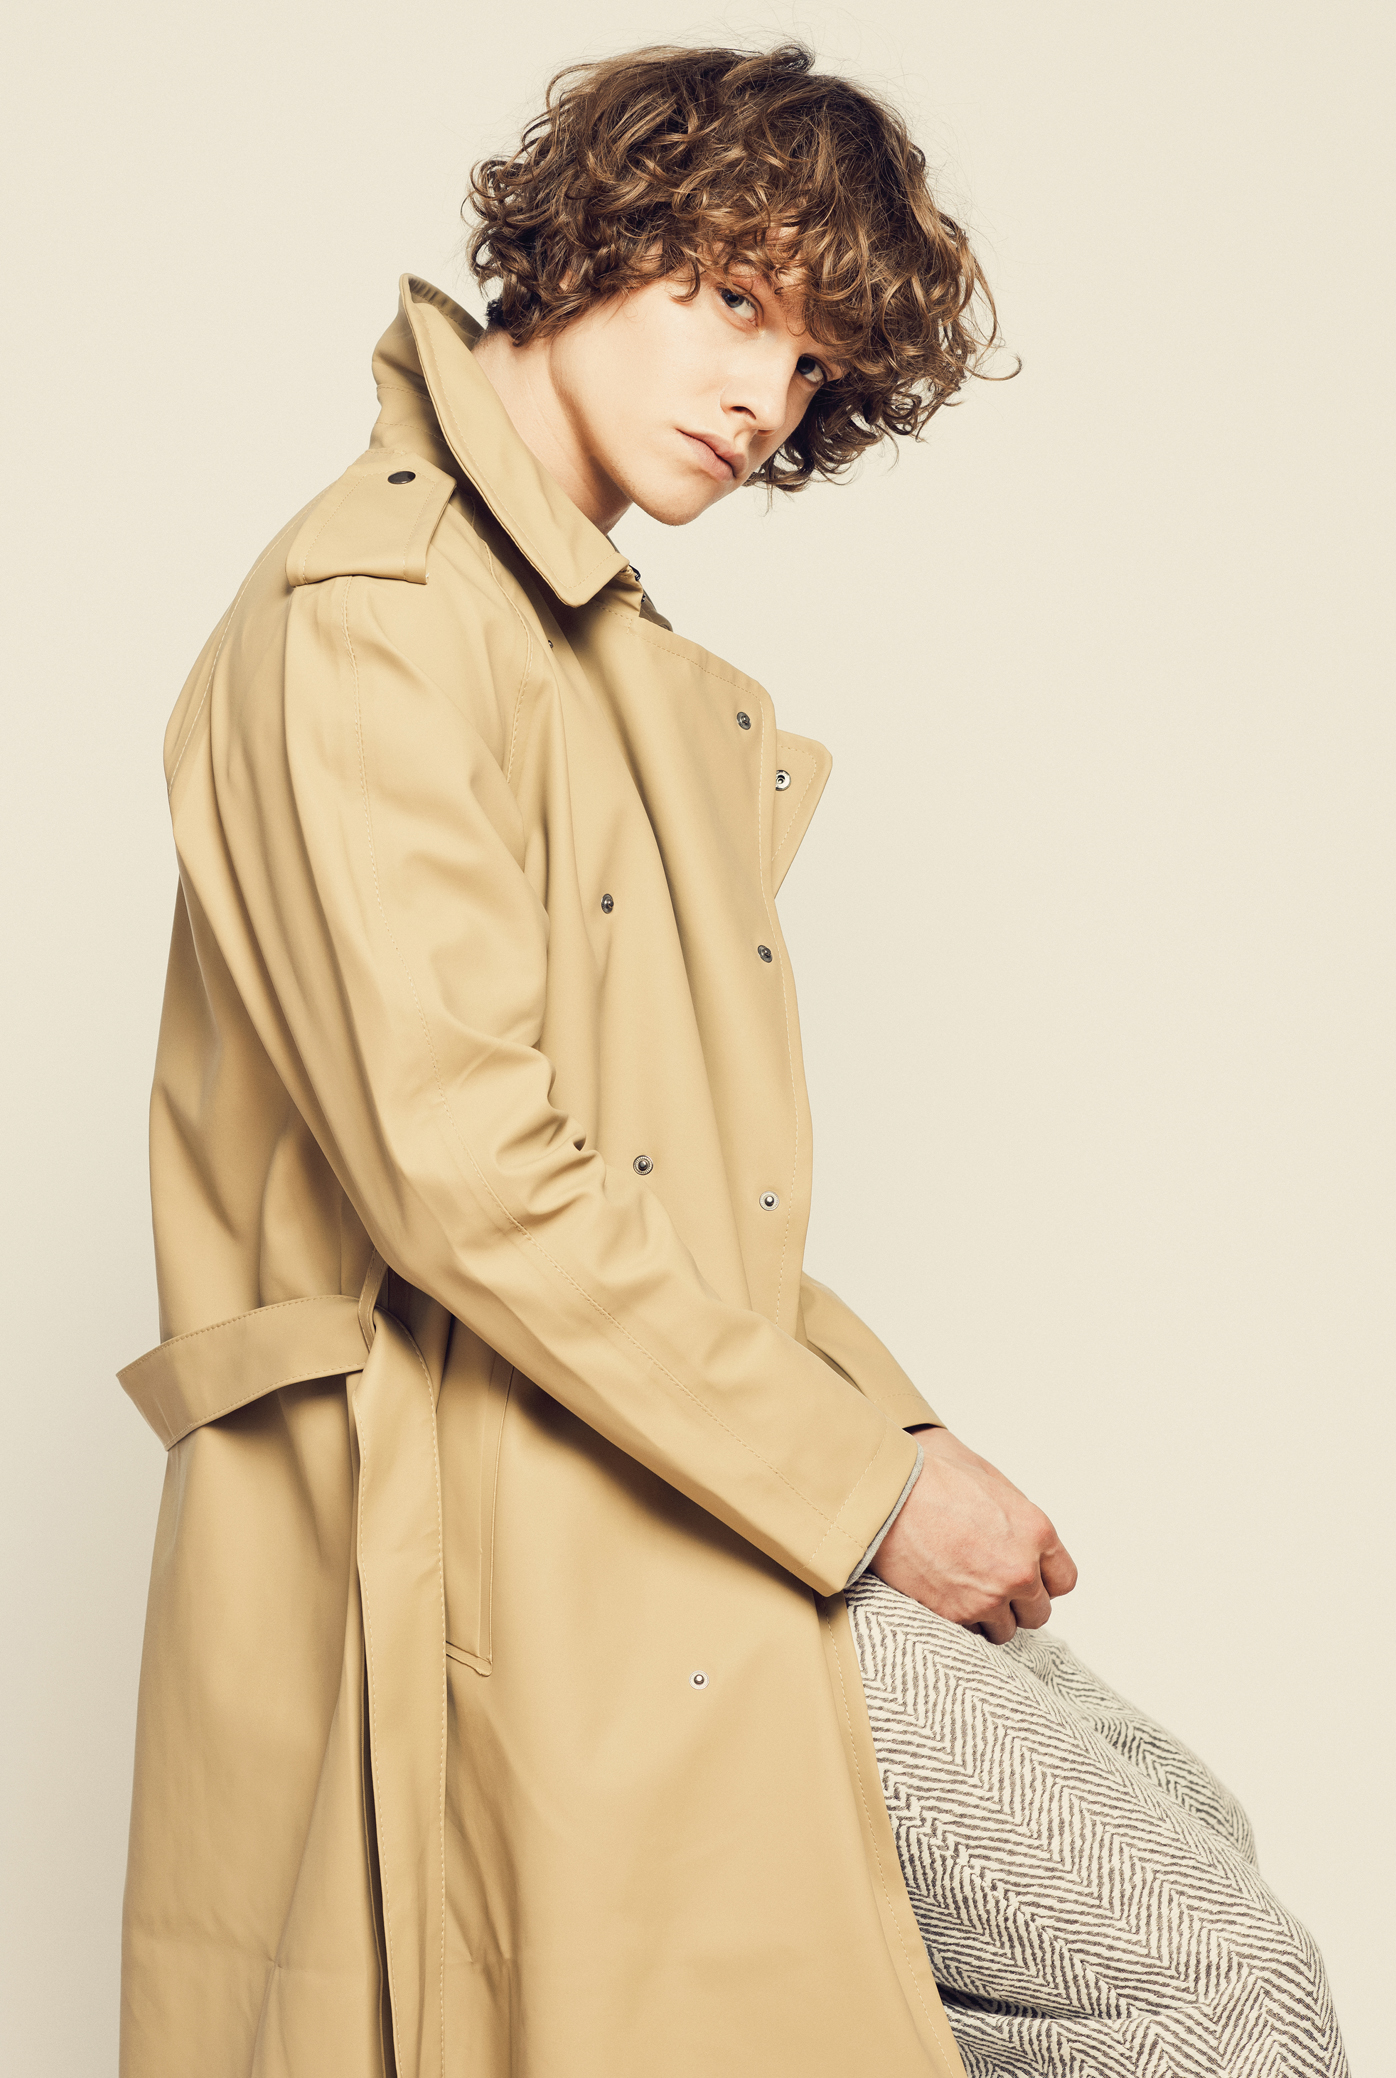 Stutterheim's rubberized trenchcoat and Uniforms for the Dedicated's linen pants.